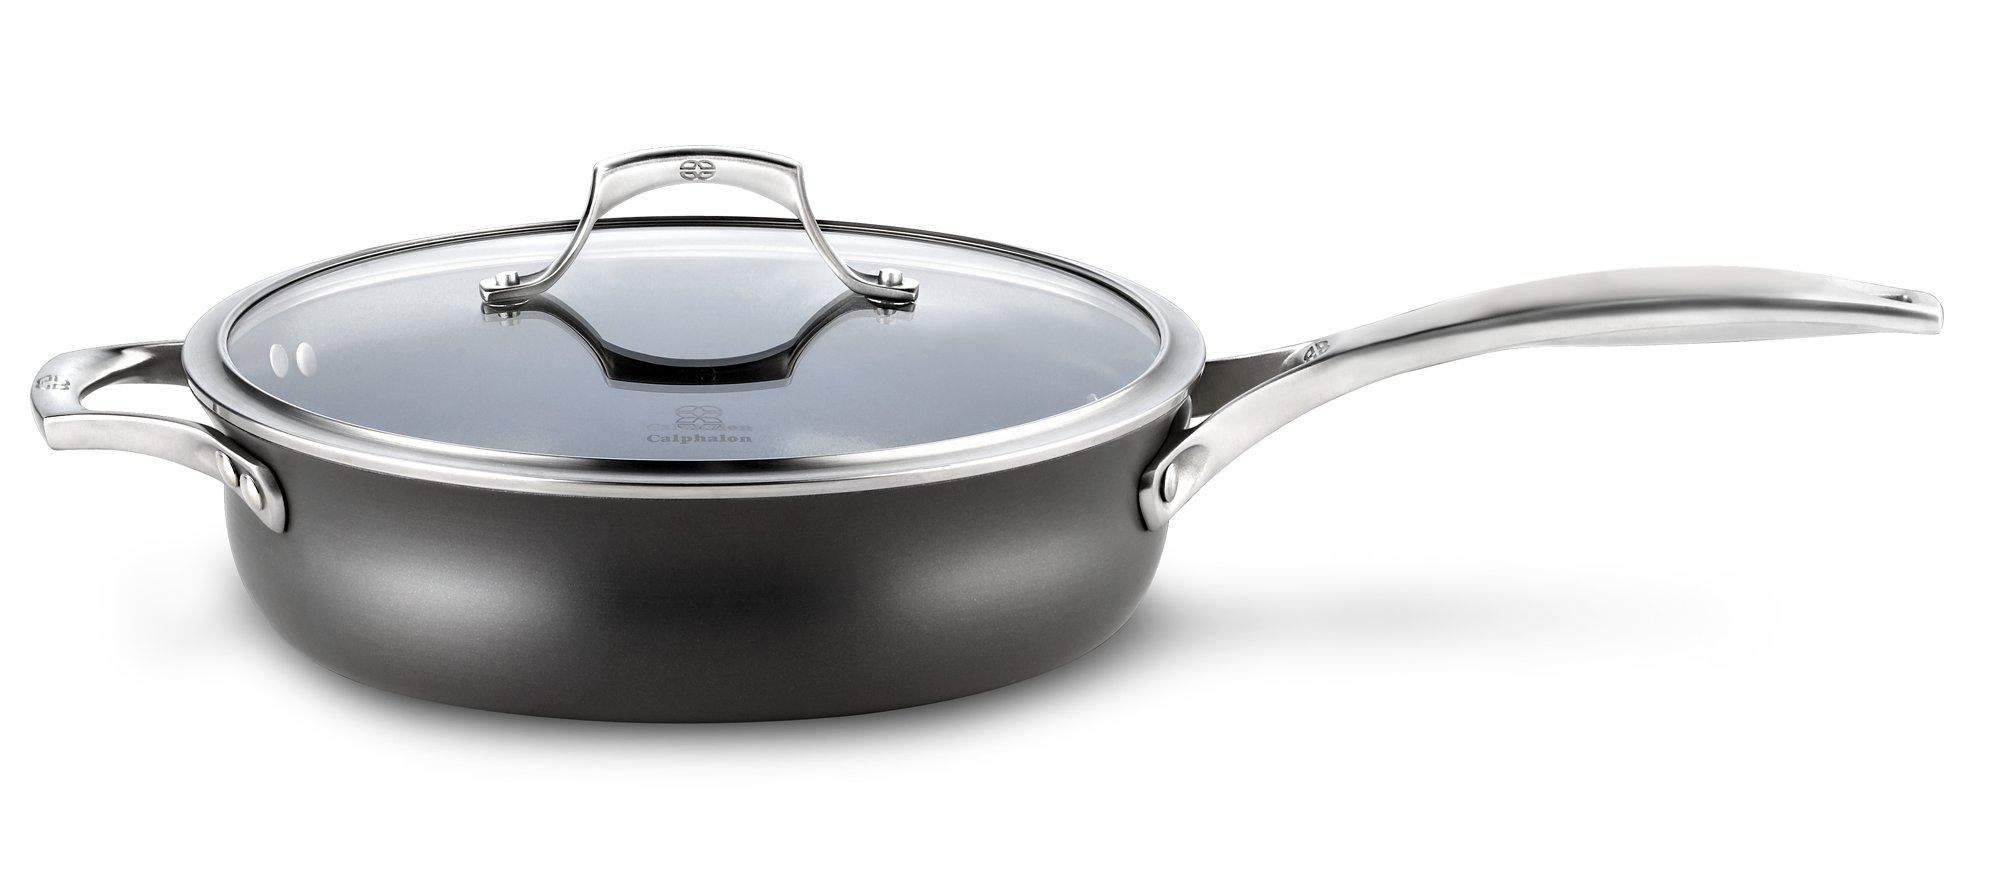 Calphalon Unison Nonstick 4-qt. Saute Pan with Cover